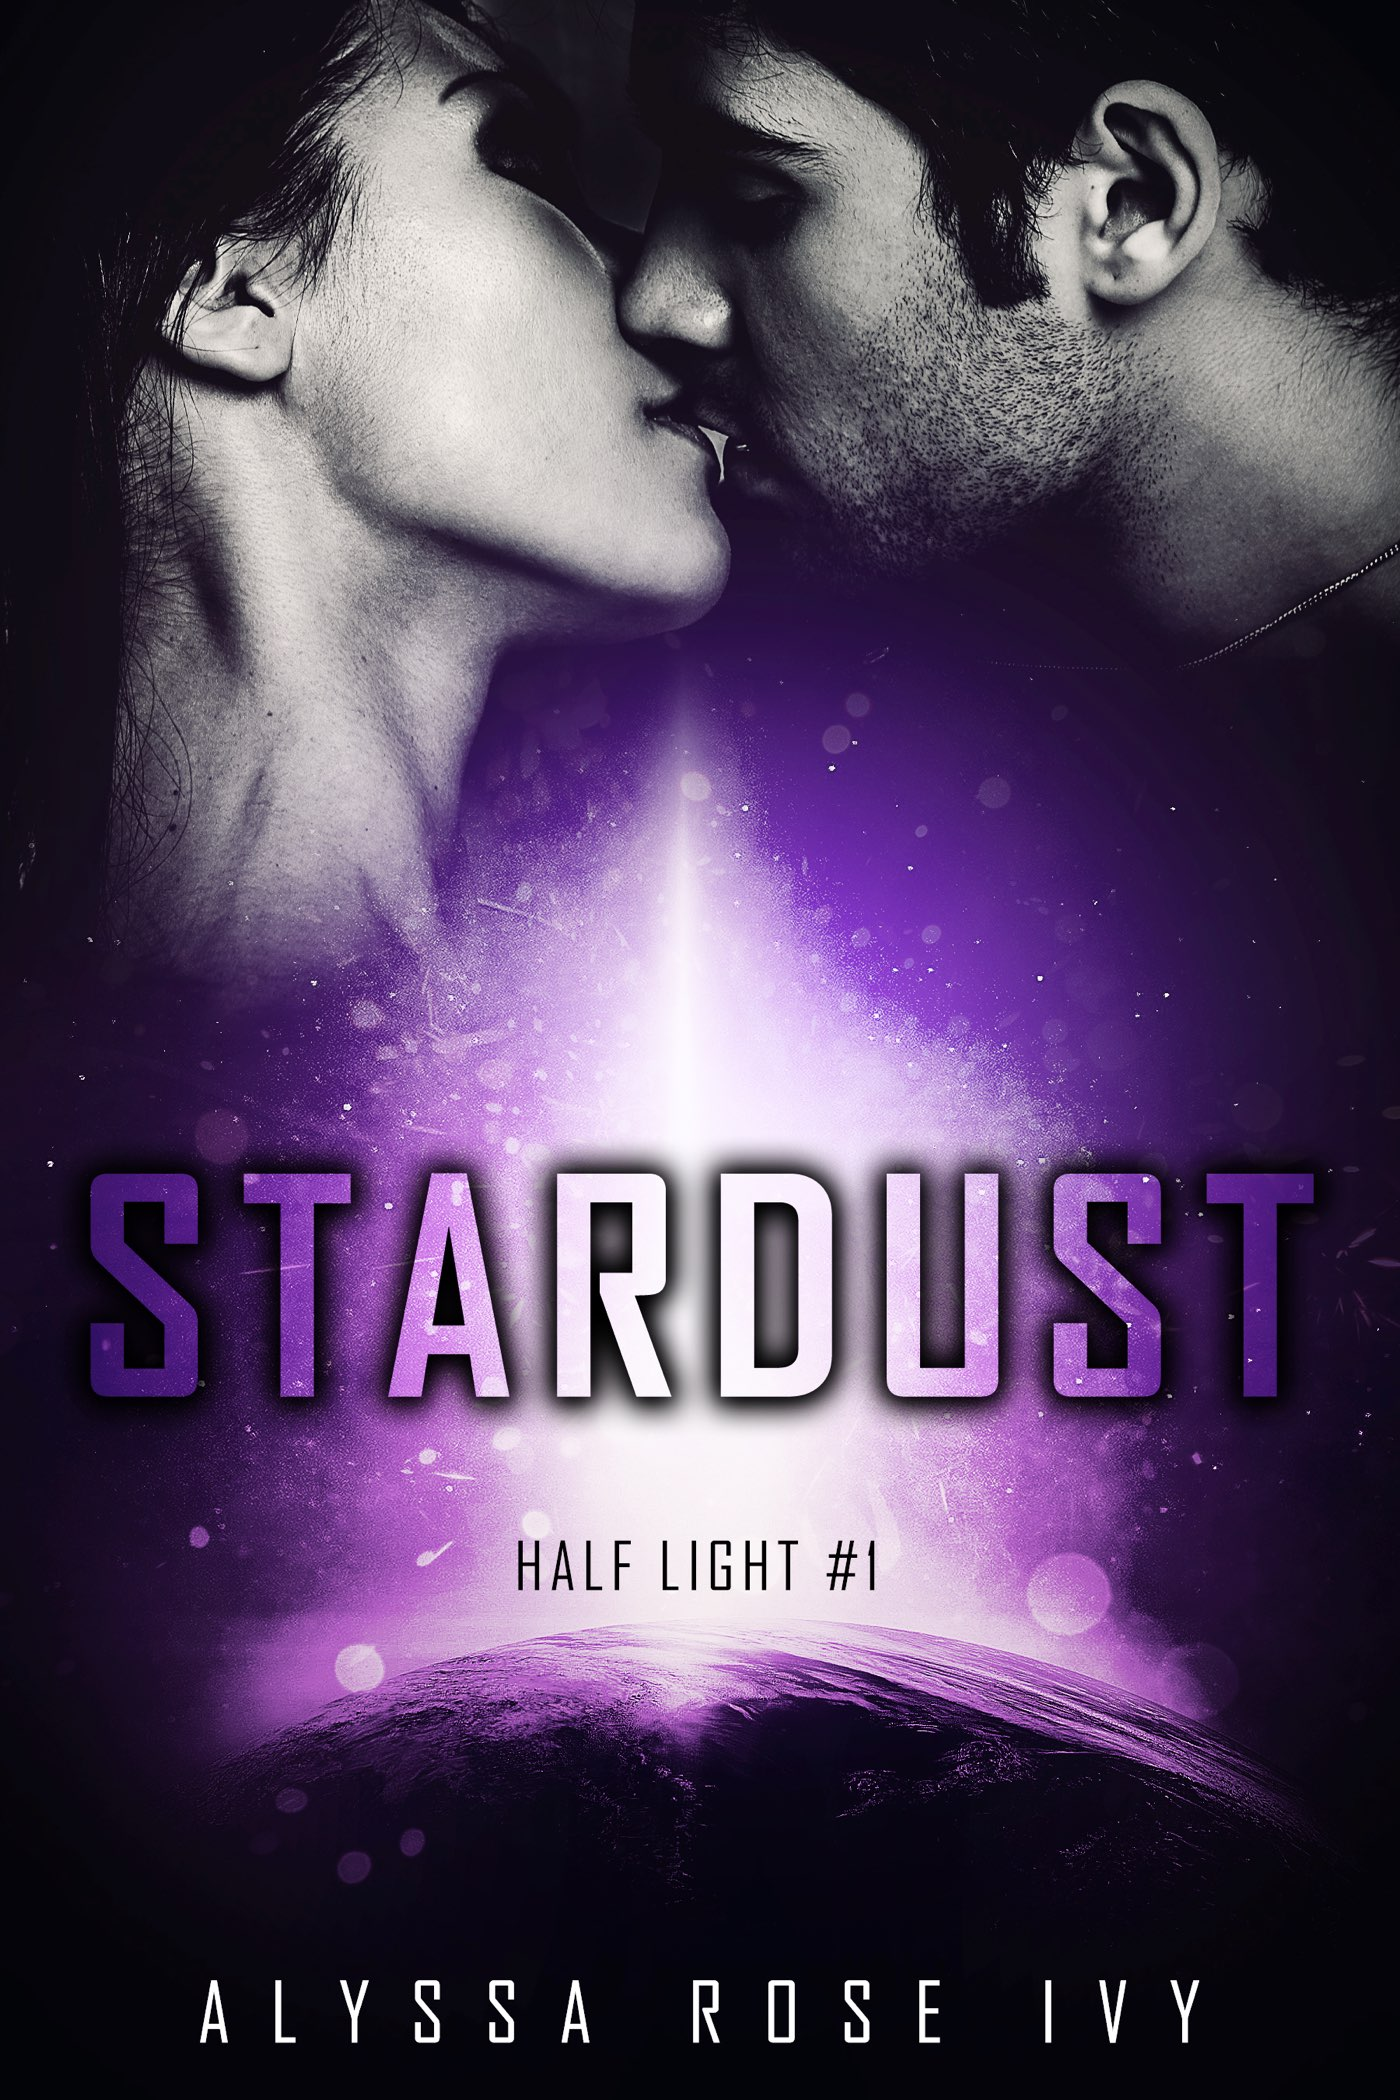 Epub download stardust free